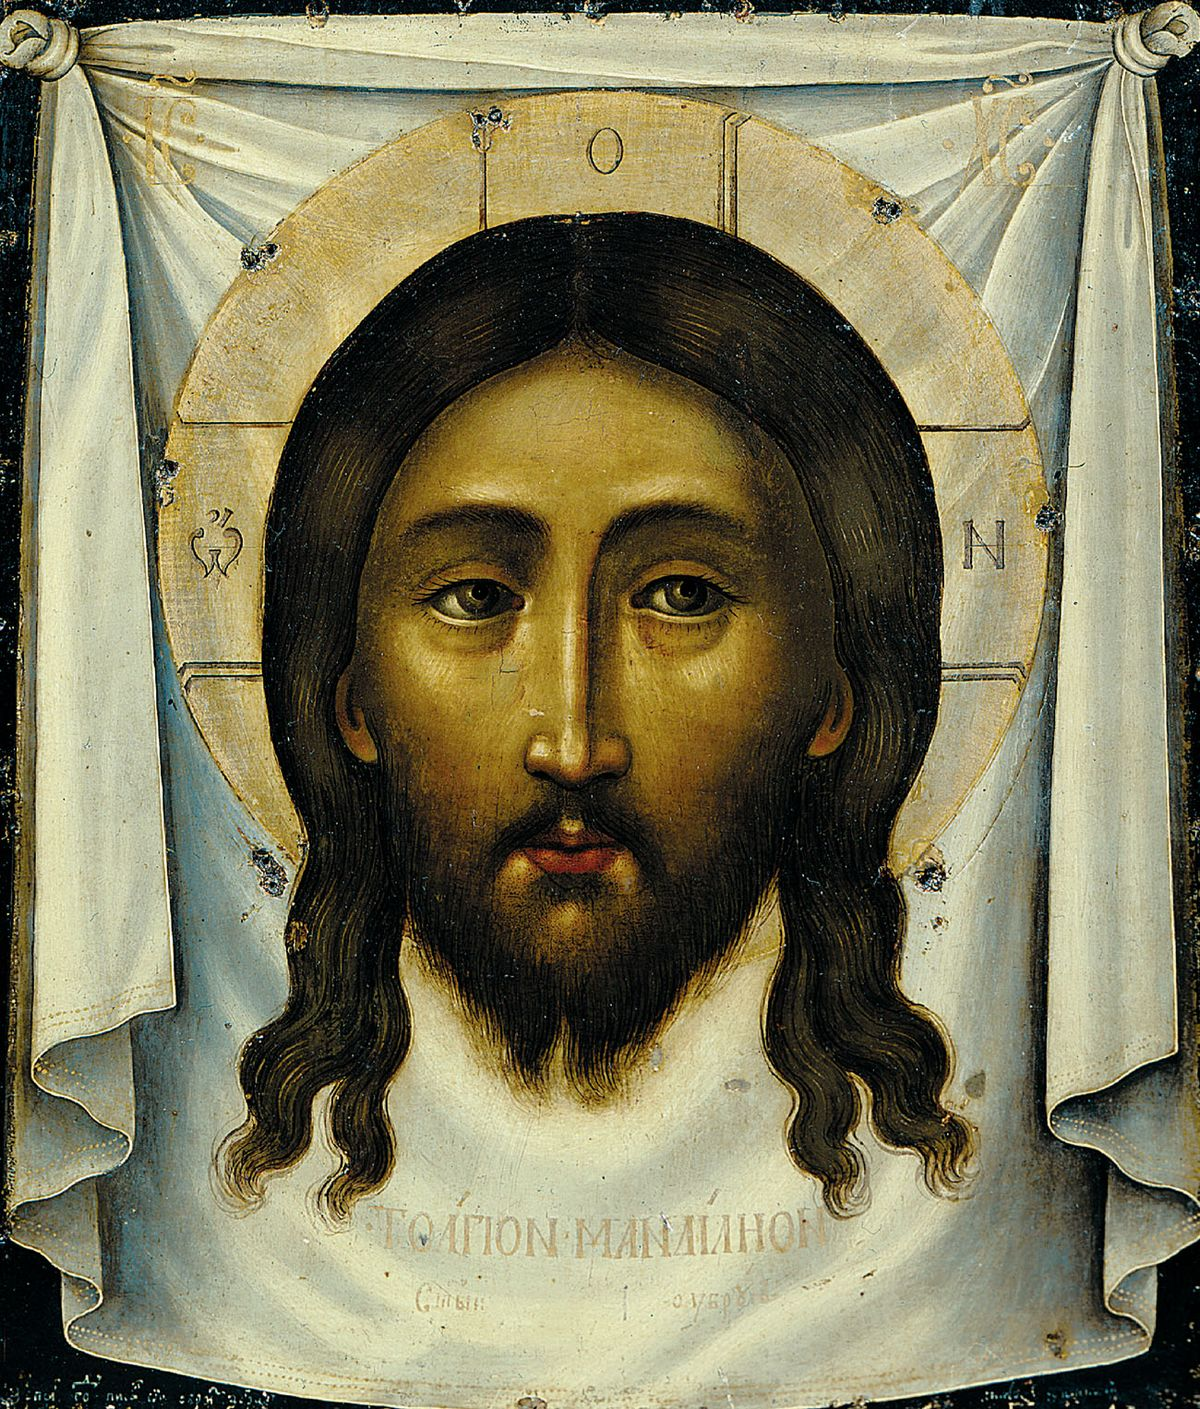 Christ's Holy Image of Edessa (and is it really the Shroud